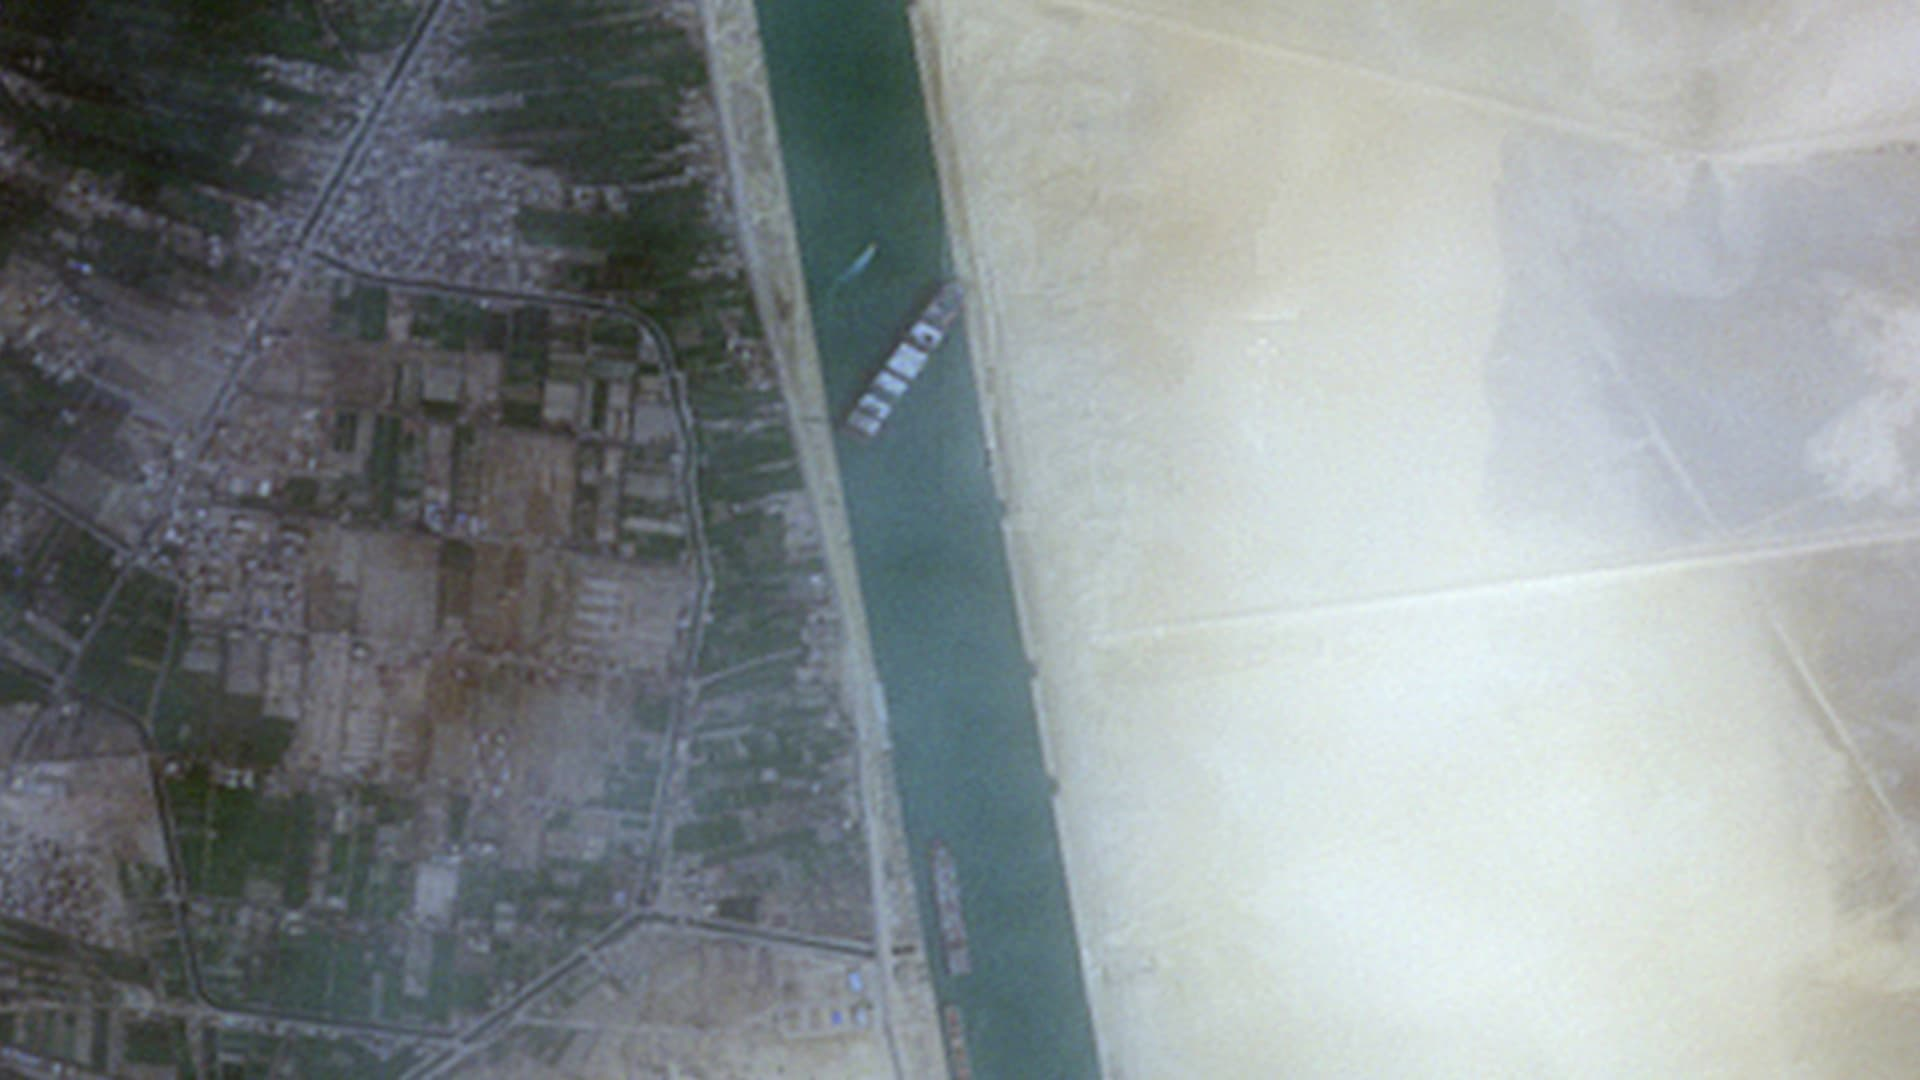 Satellite images of container ship Ever Given stuck in Egypt's Suez Canal.